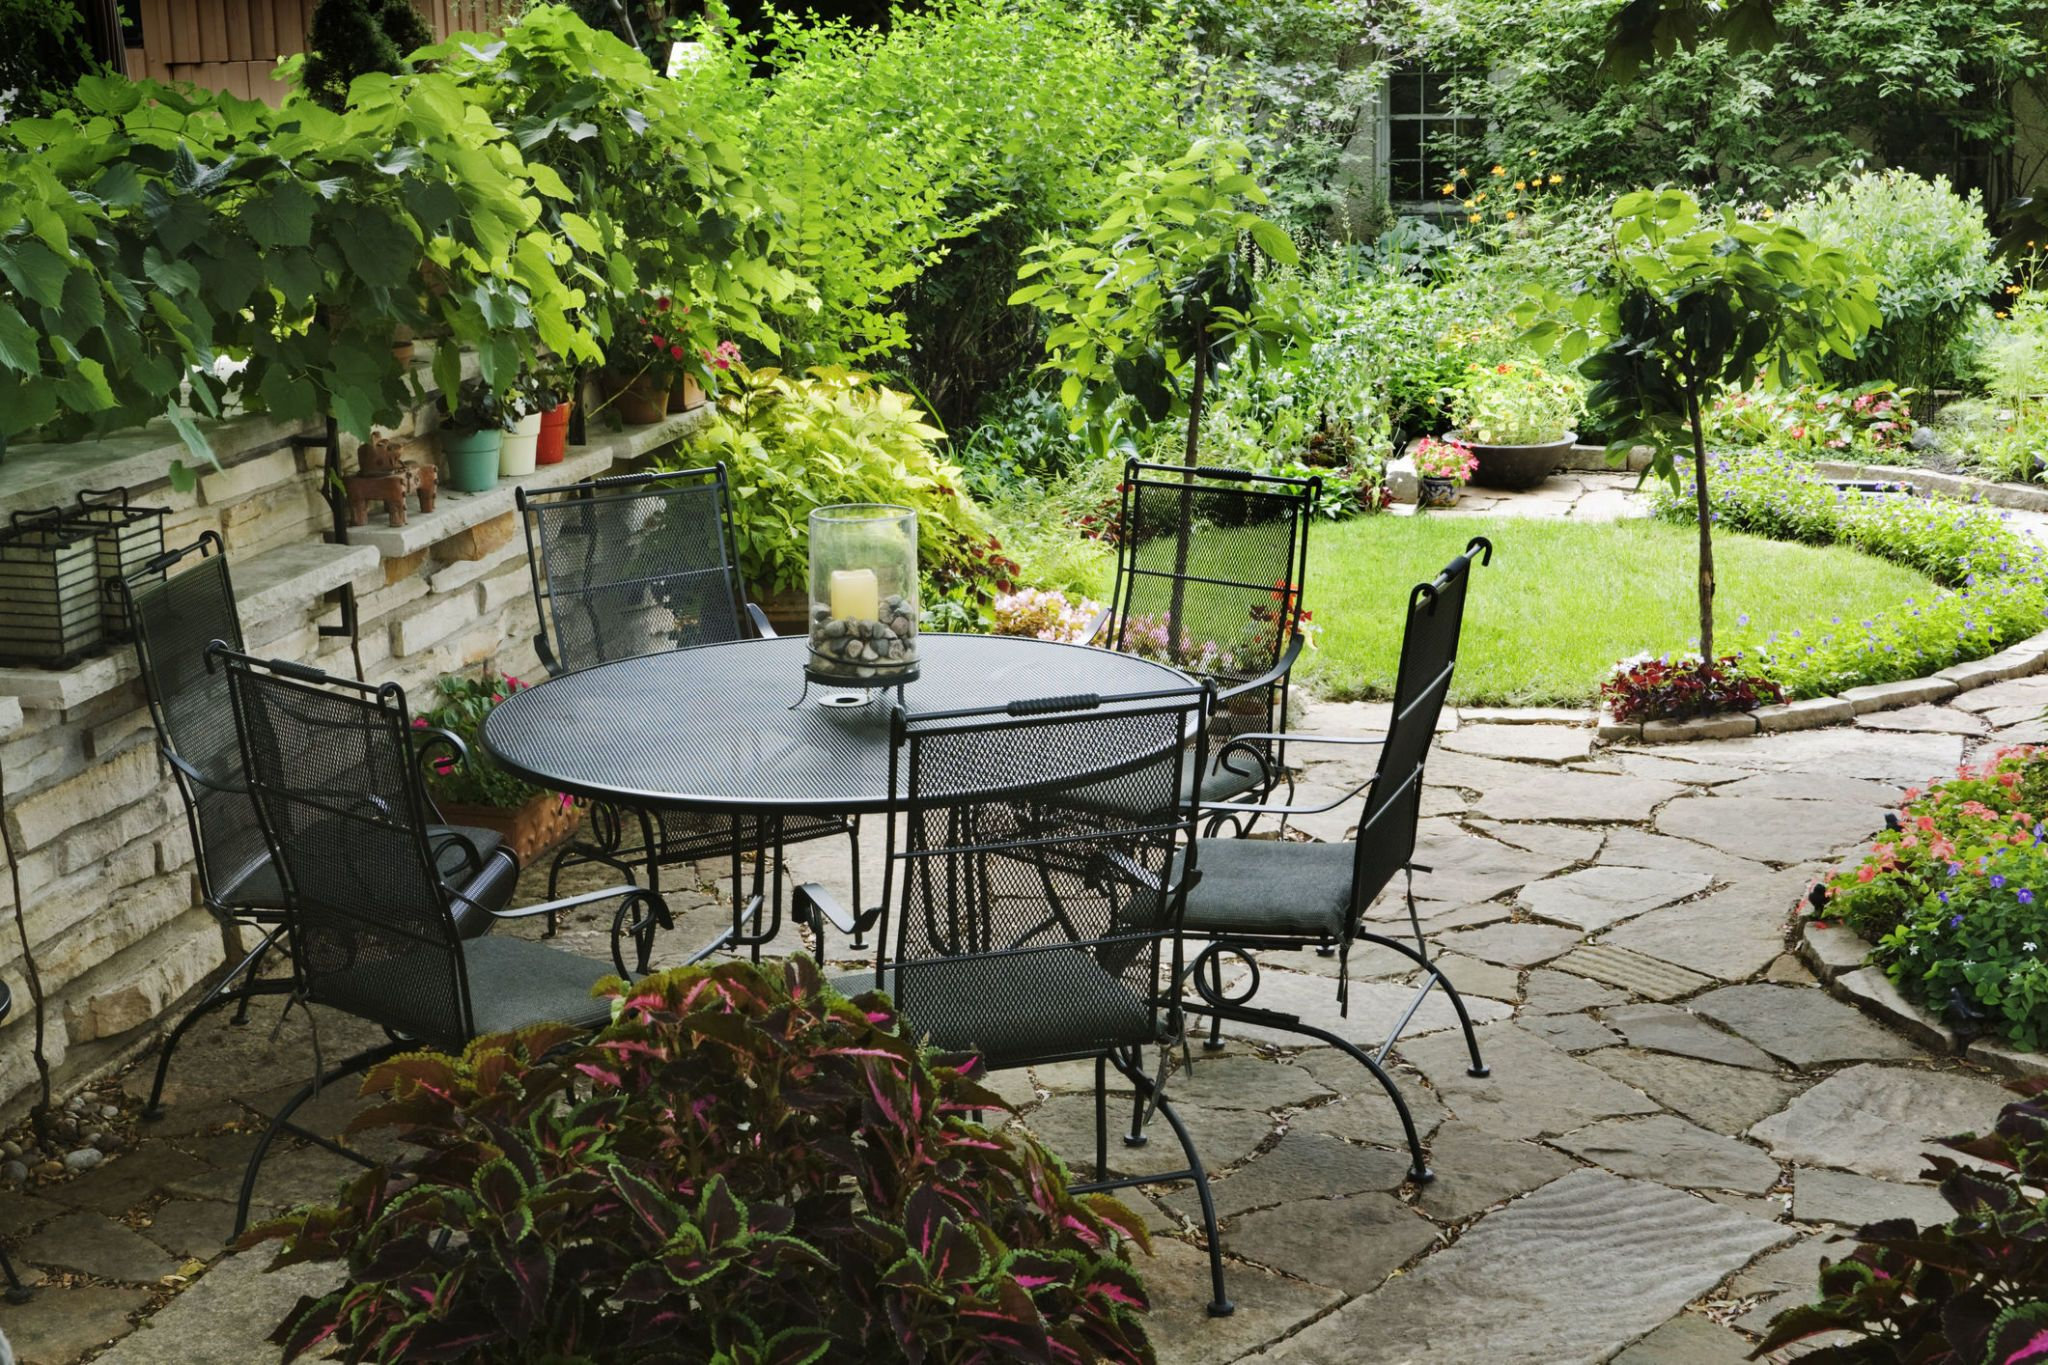 A Quiet Patio With Table And Chairs Furniture In A Back Yard Garden  Featuring A Circular